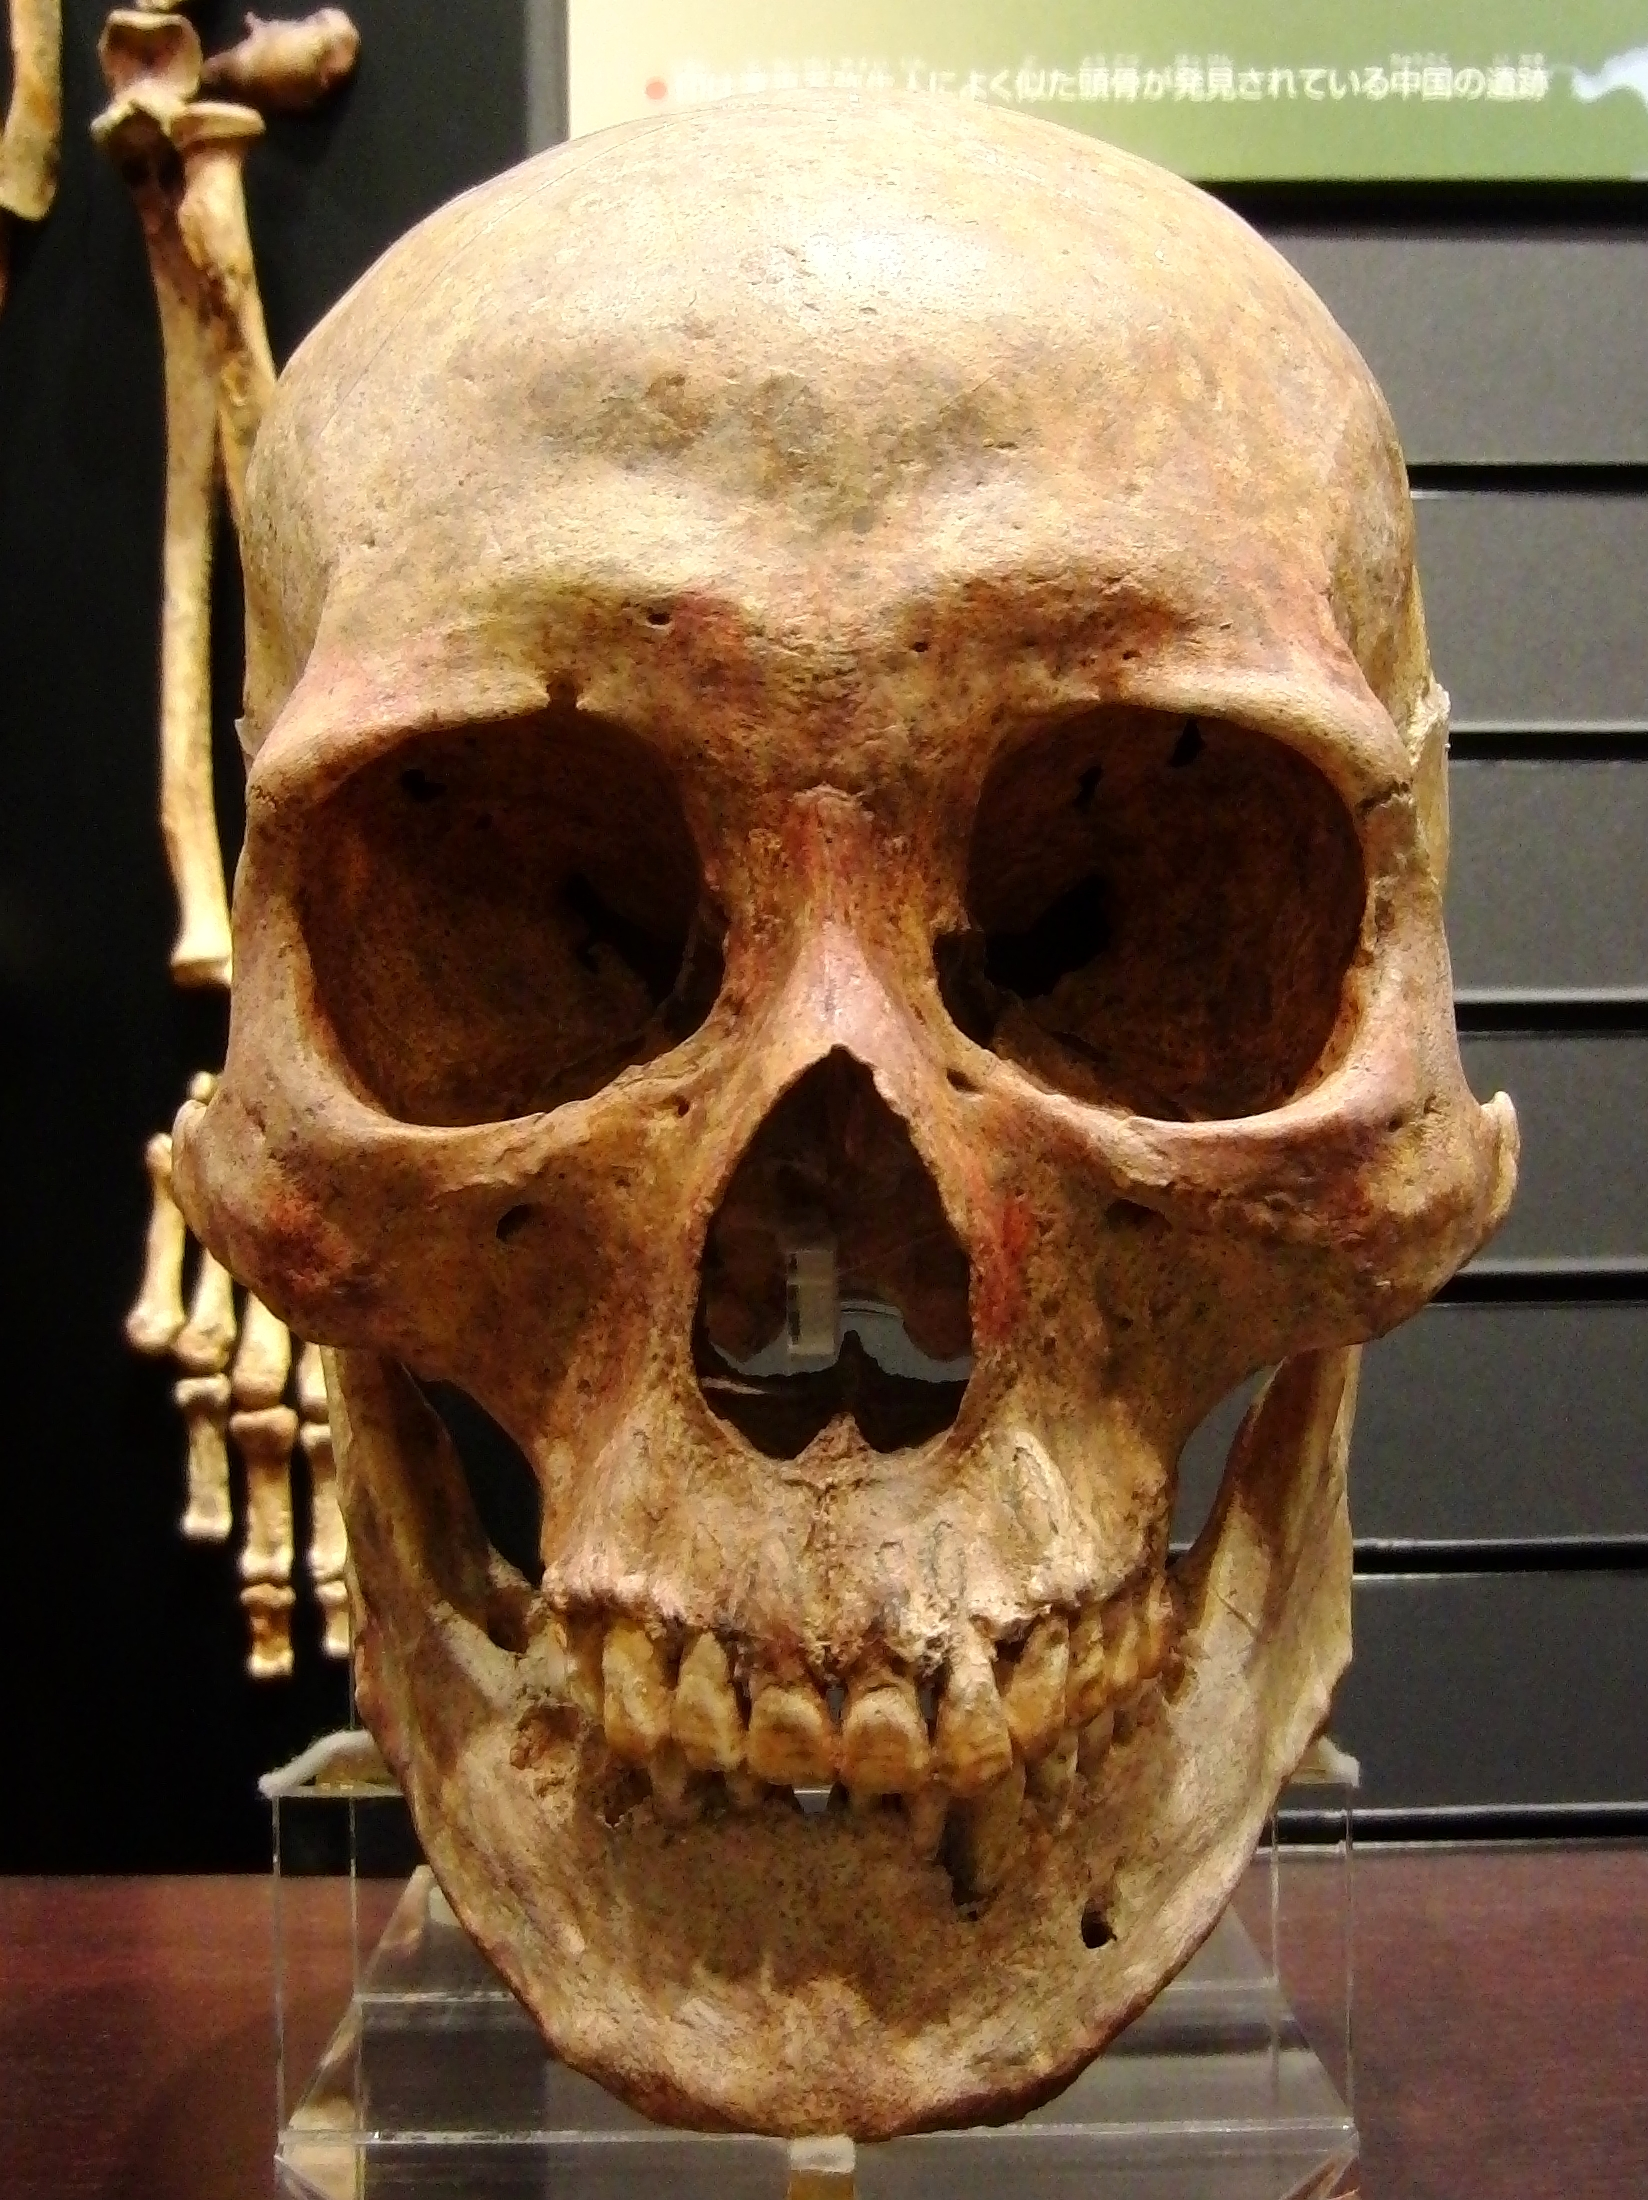 File:Skull of Yayoi people man.jpg - Wikimedia Commons